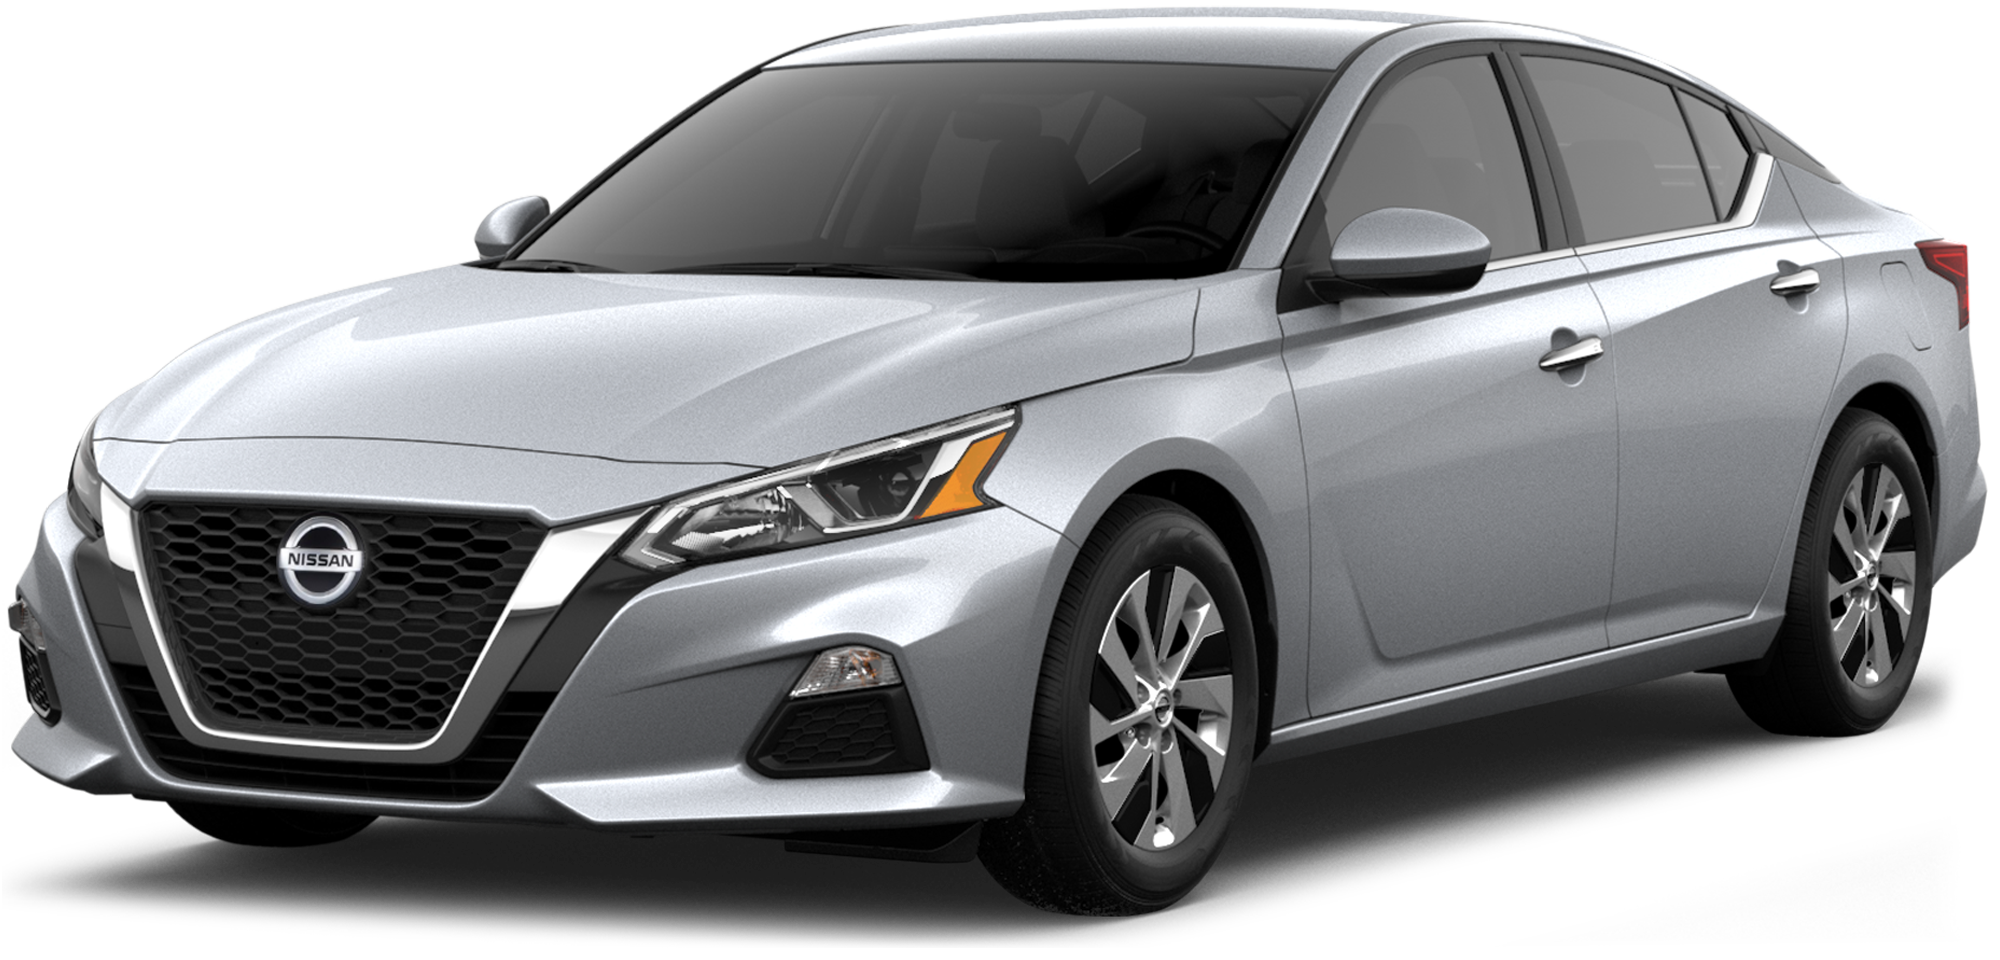 2021 Nissan Altima Incentives, Specials & Offers in Muncy PA